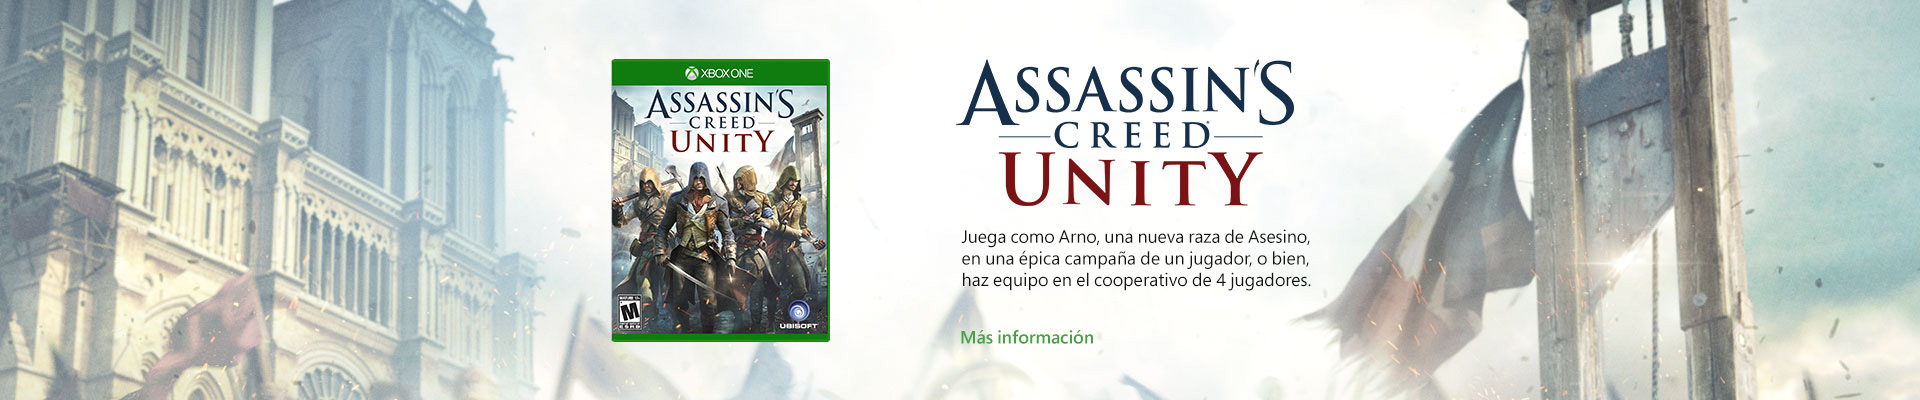 Xbox One Assassins Creed Unity banner